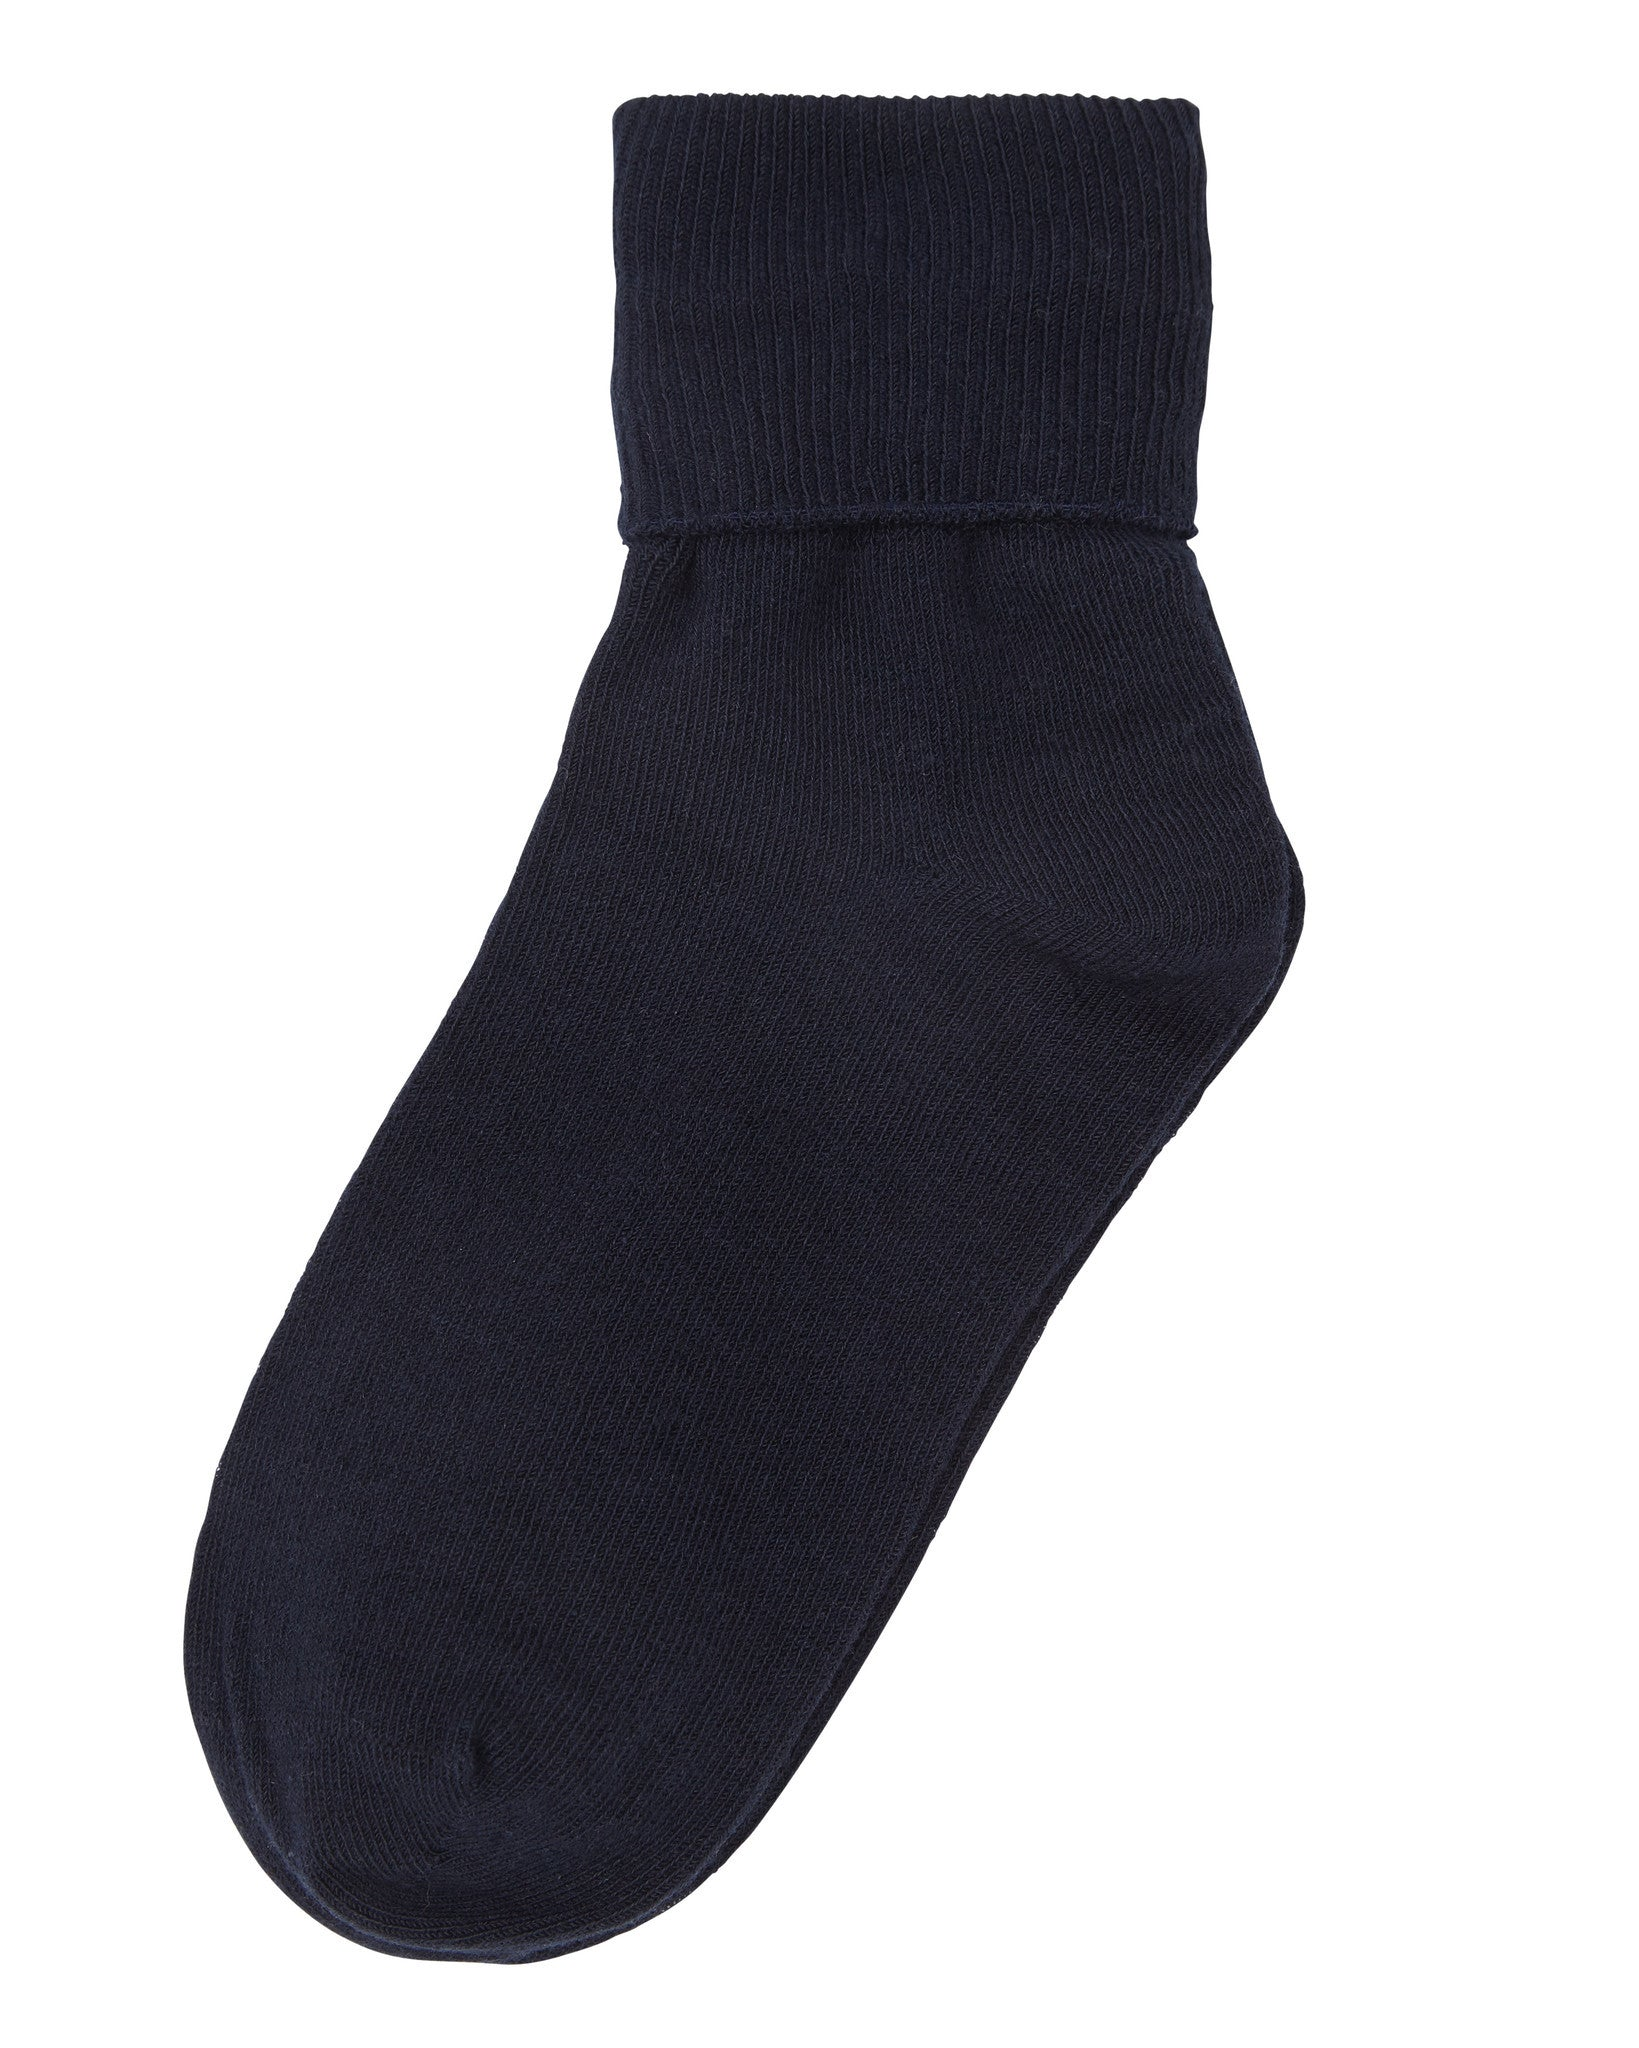 1-Pack Big Girls Single Cuff (Comfortoe) Navy Socks